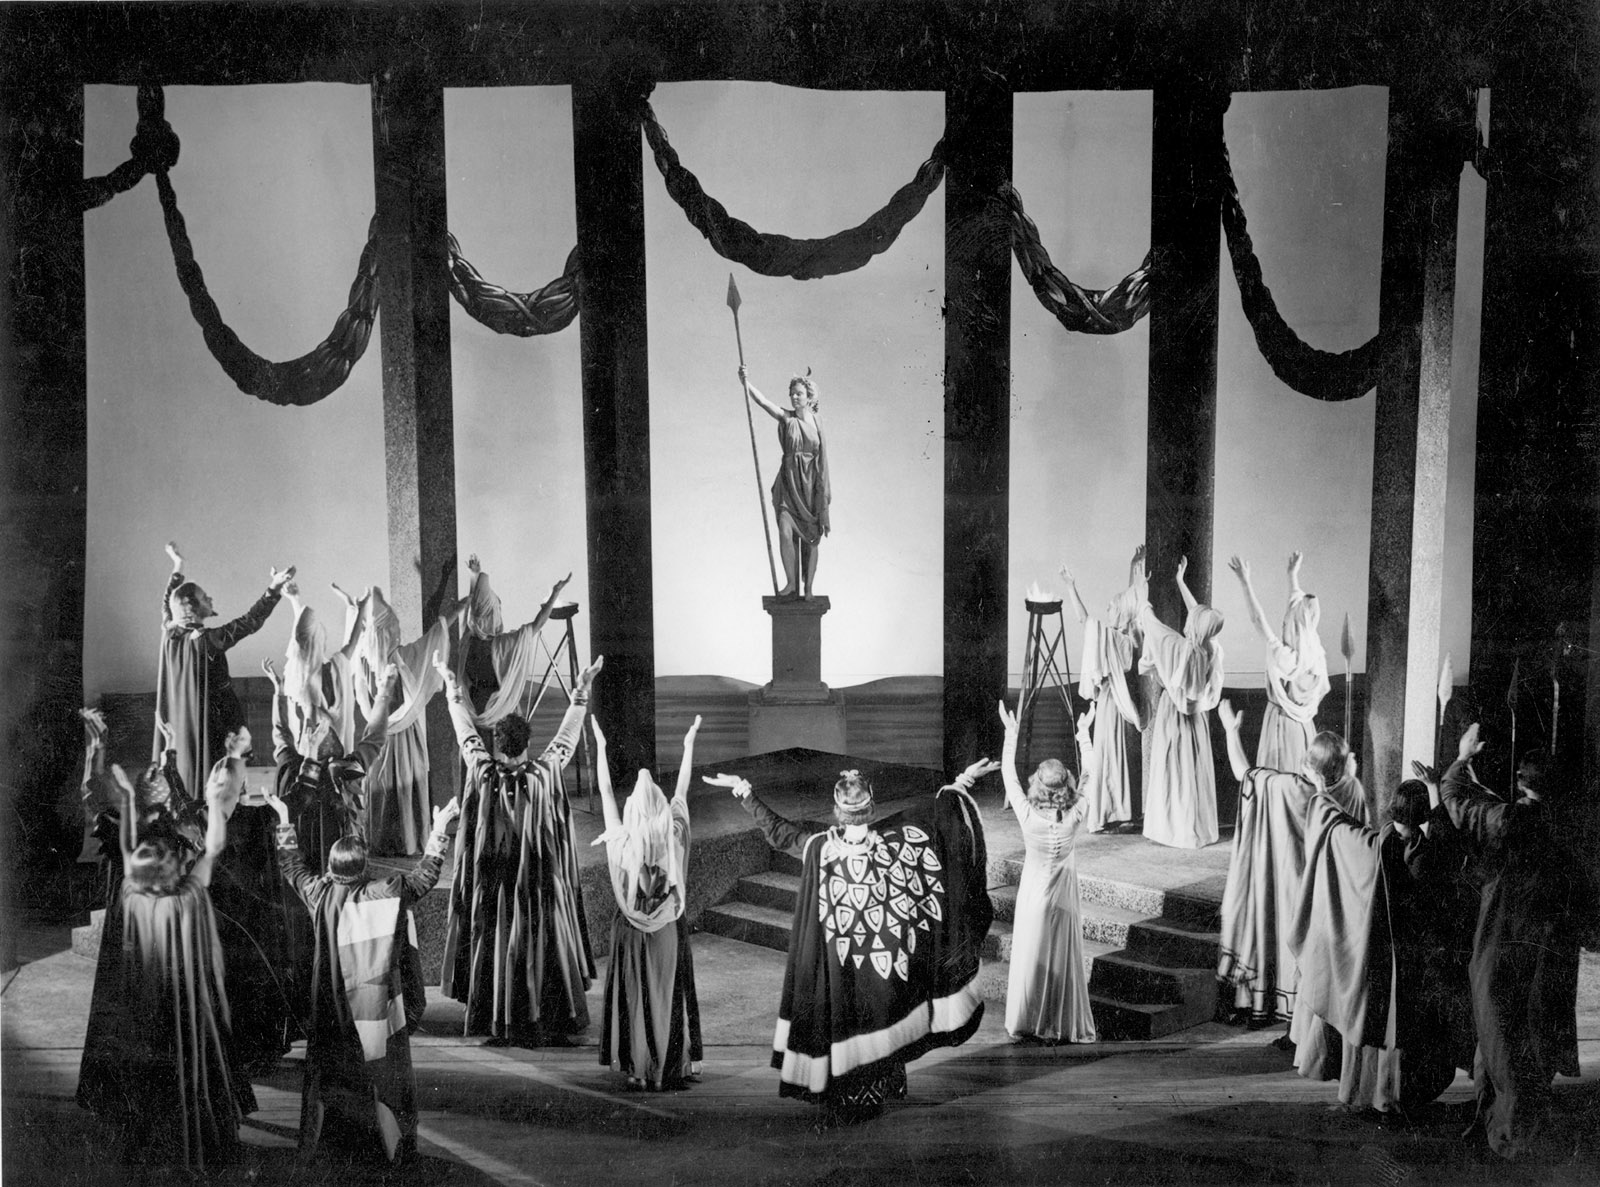 Photograph of a production of Pericles by the Royal Shakespeare Company, Stratford-Upon-Avon, 1947